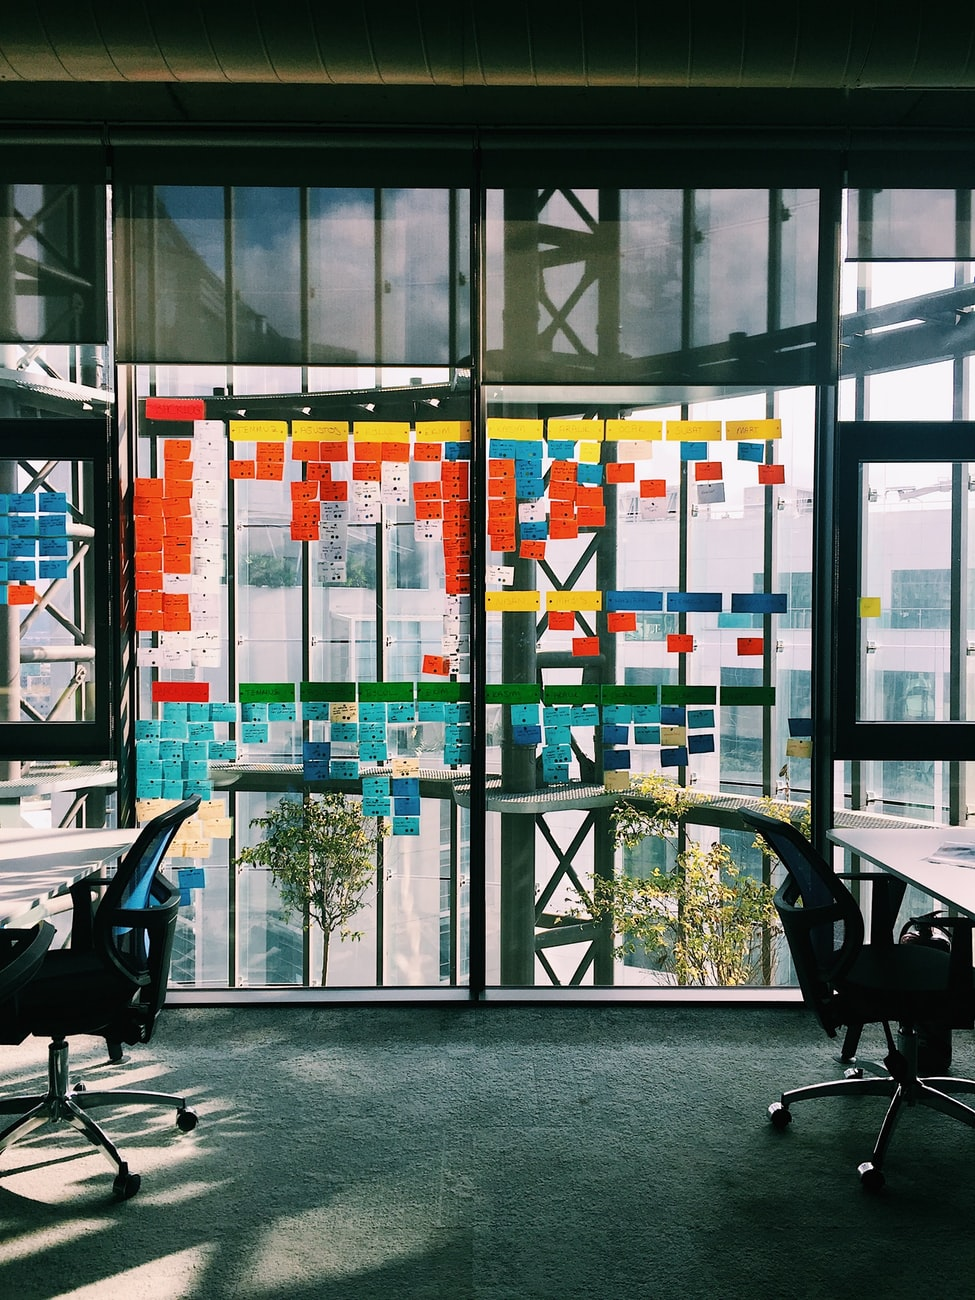 post it notes covering office windows